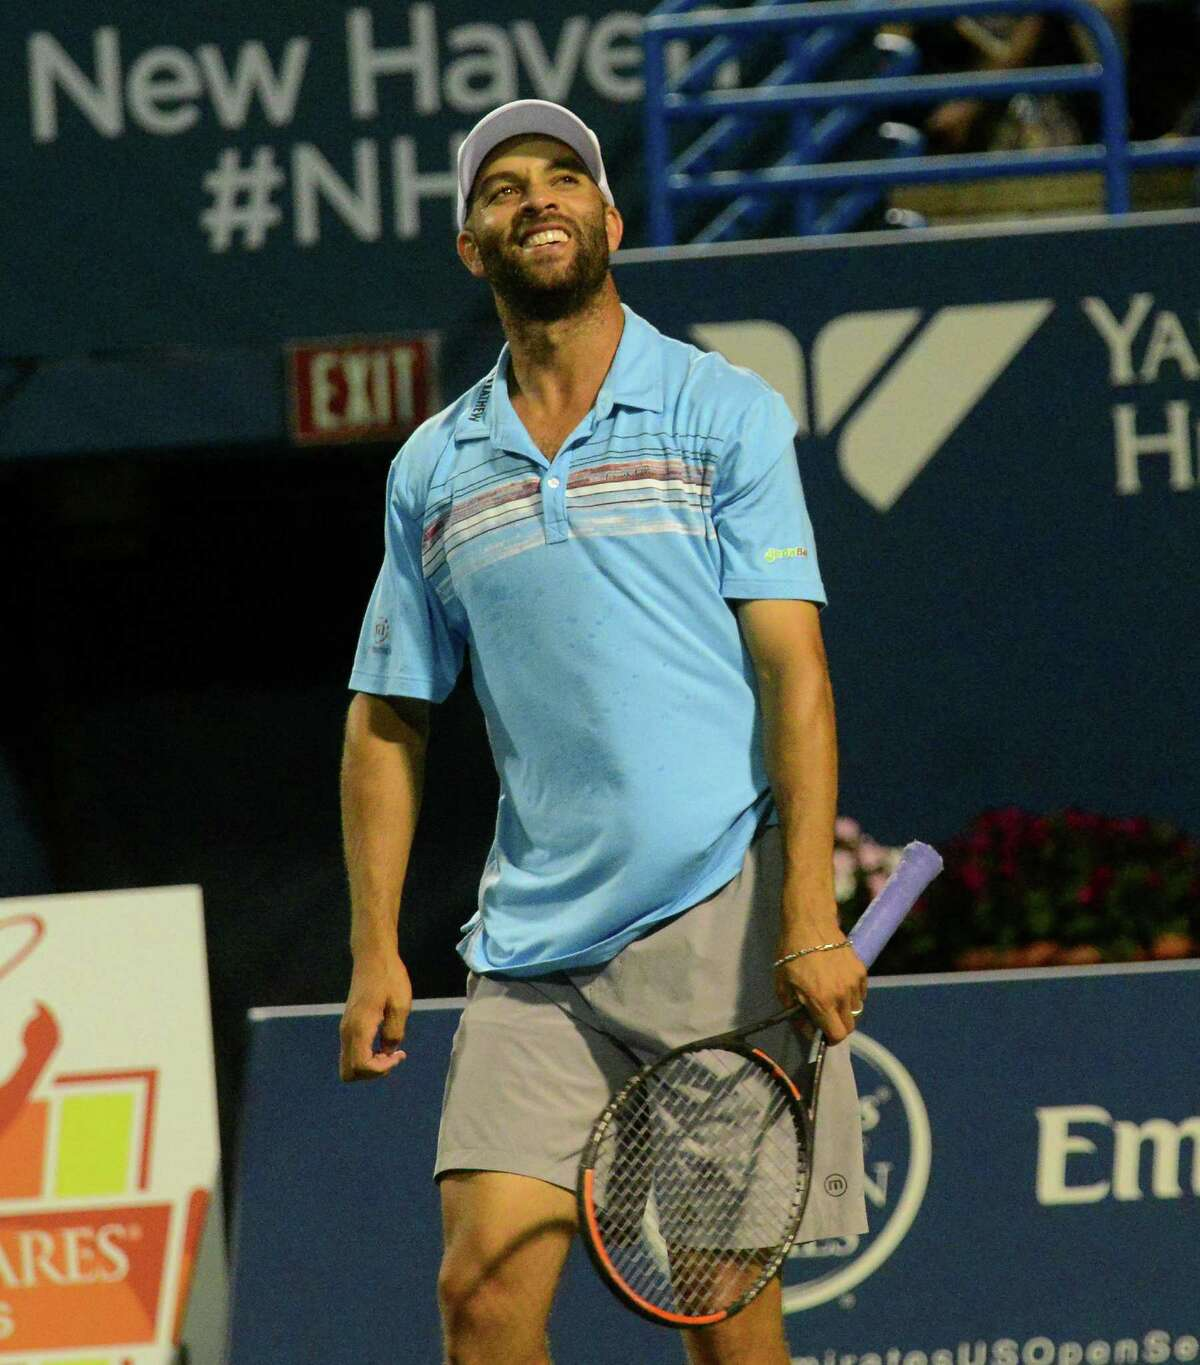 James Blake interacts with the audience as he plays a match against Andy Roddick in the Men's Legend Series at the Connecticut Open tennis tournament in New Haven on Aug. 27, 2015.